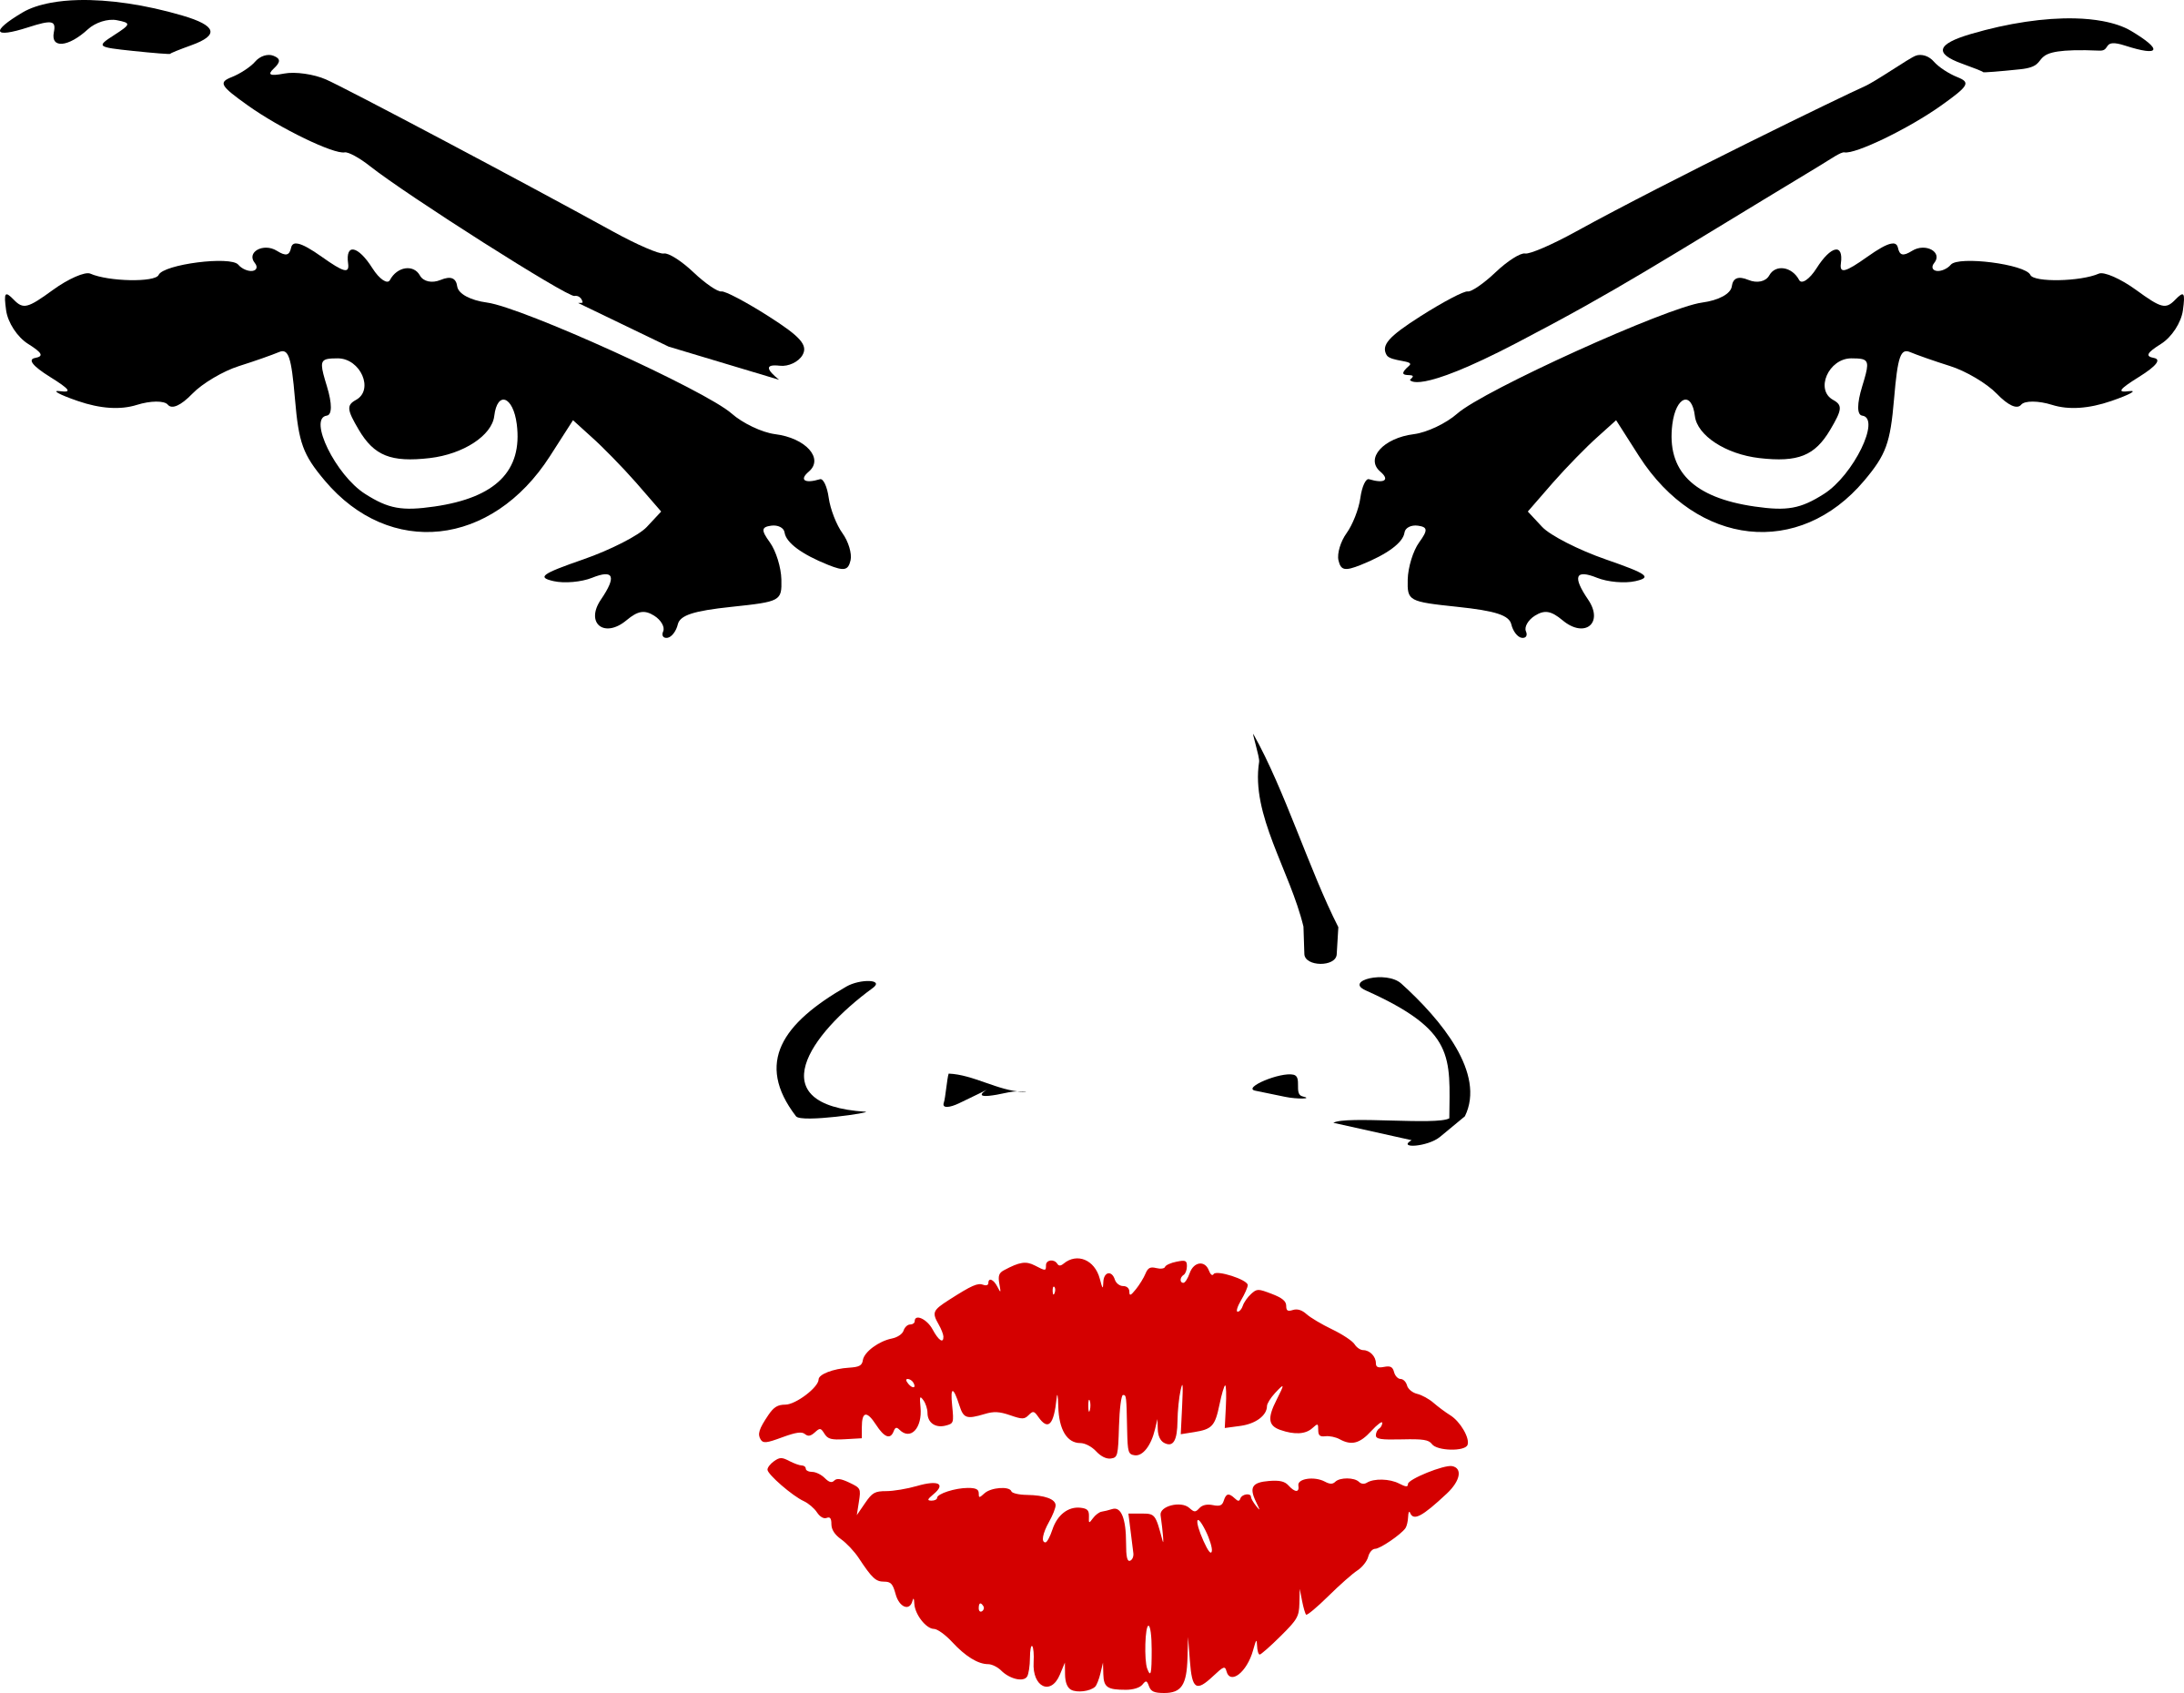 Lips Nose And Eye Clipart.